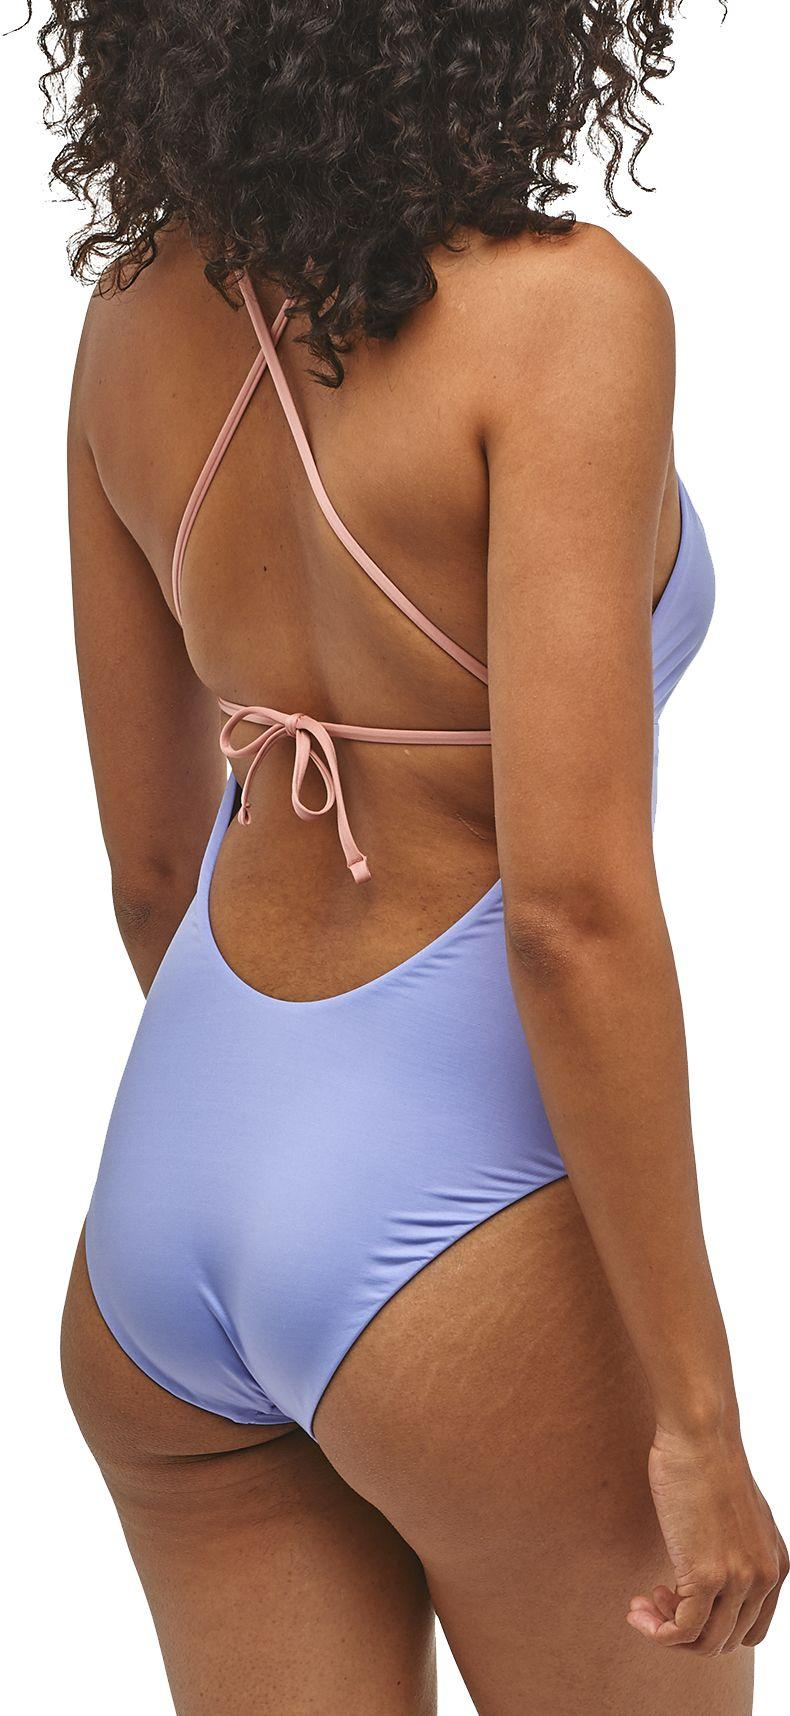 f3afed7449dcf Patagonia - Blue Glassy Dawn Crossback One Piece Swimsuit - Lyst. View  fullscreen